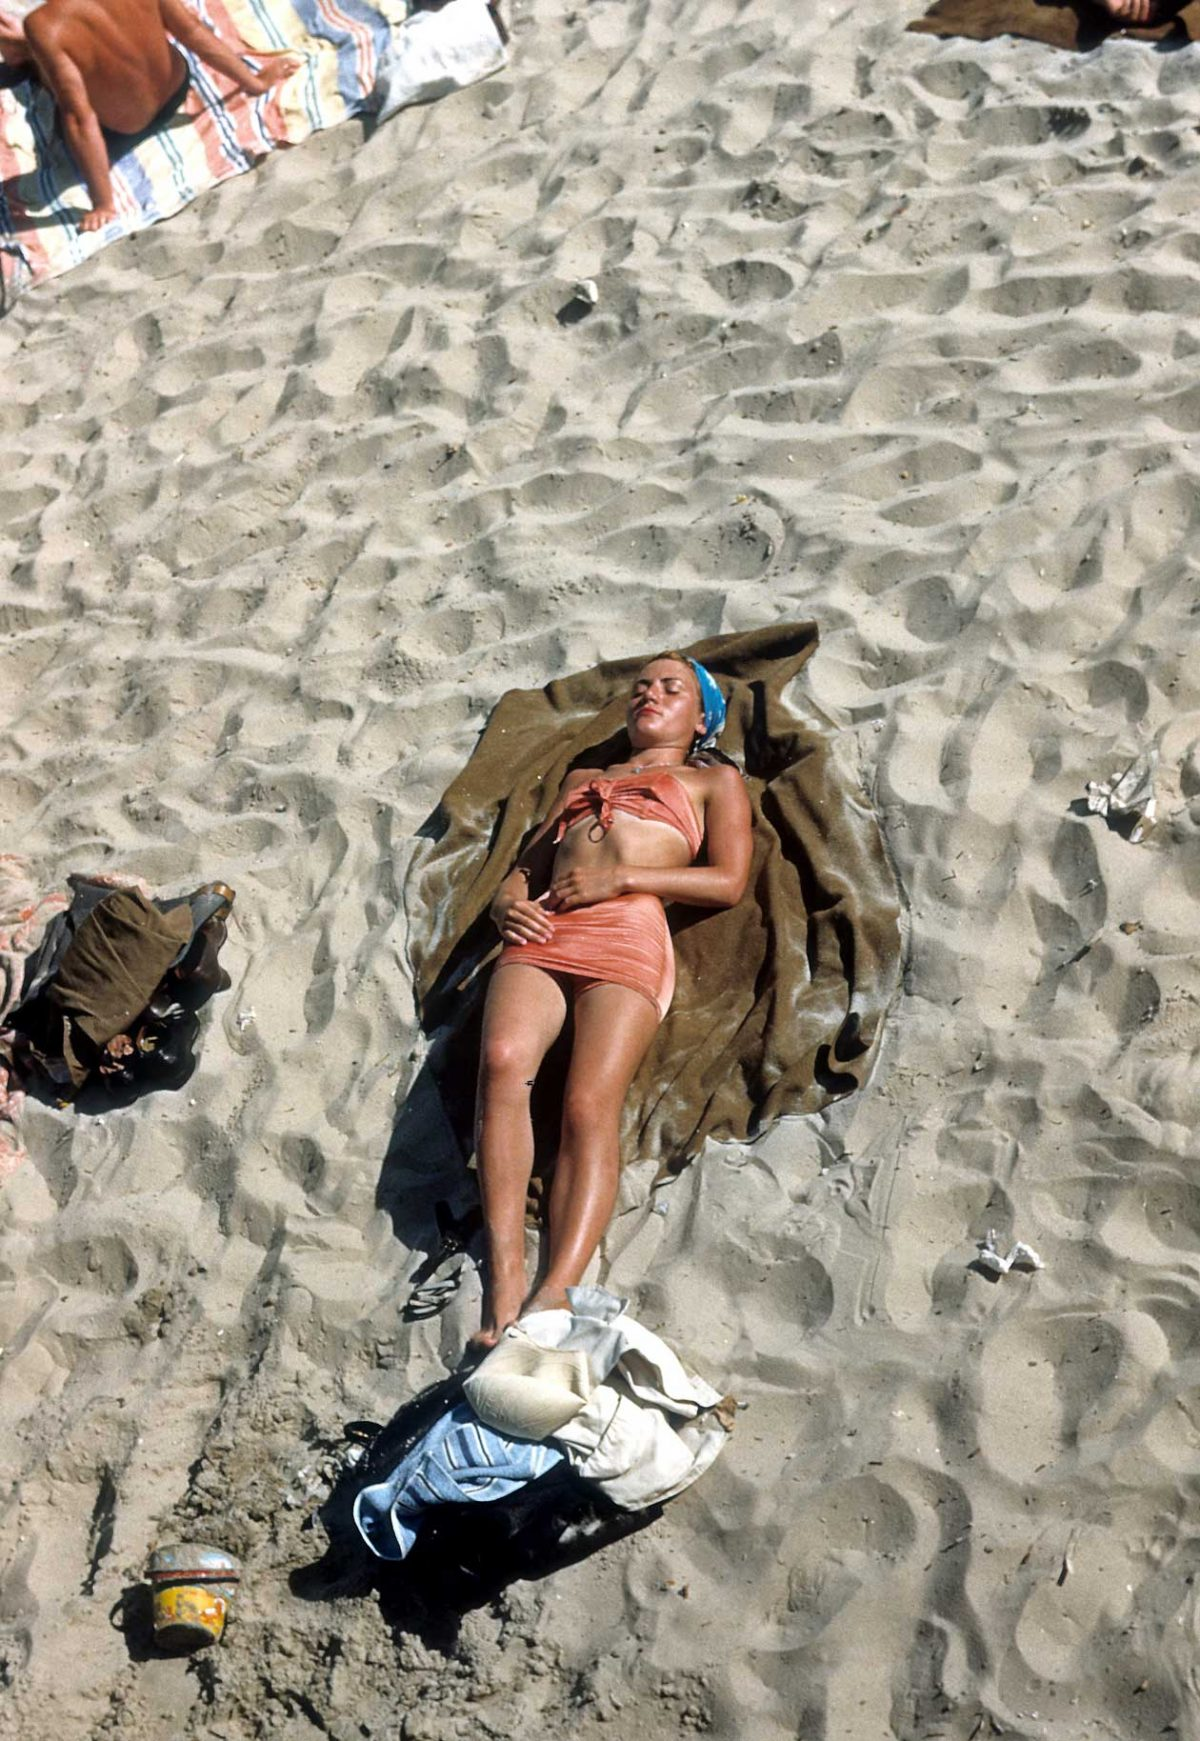 NEW YORK - CIRCA 1948: A woman sunbathes on Coney Island beach circa 1948 in Brooklyn, New York City, New York. (Photo by Sherman Oaks Antique Mall/Getty Images)